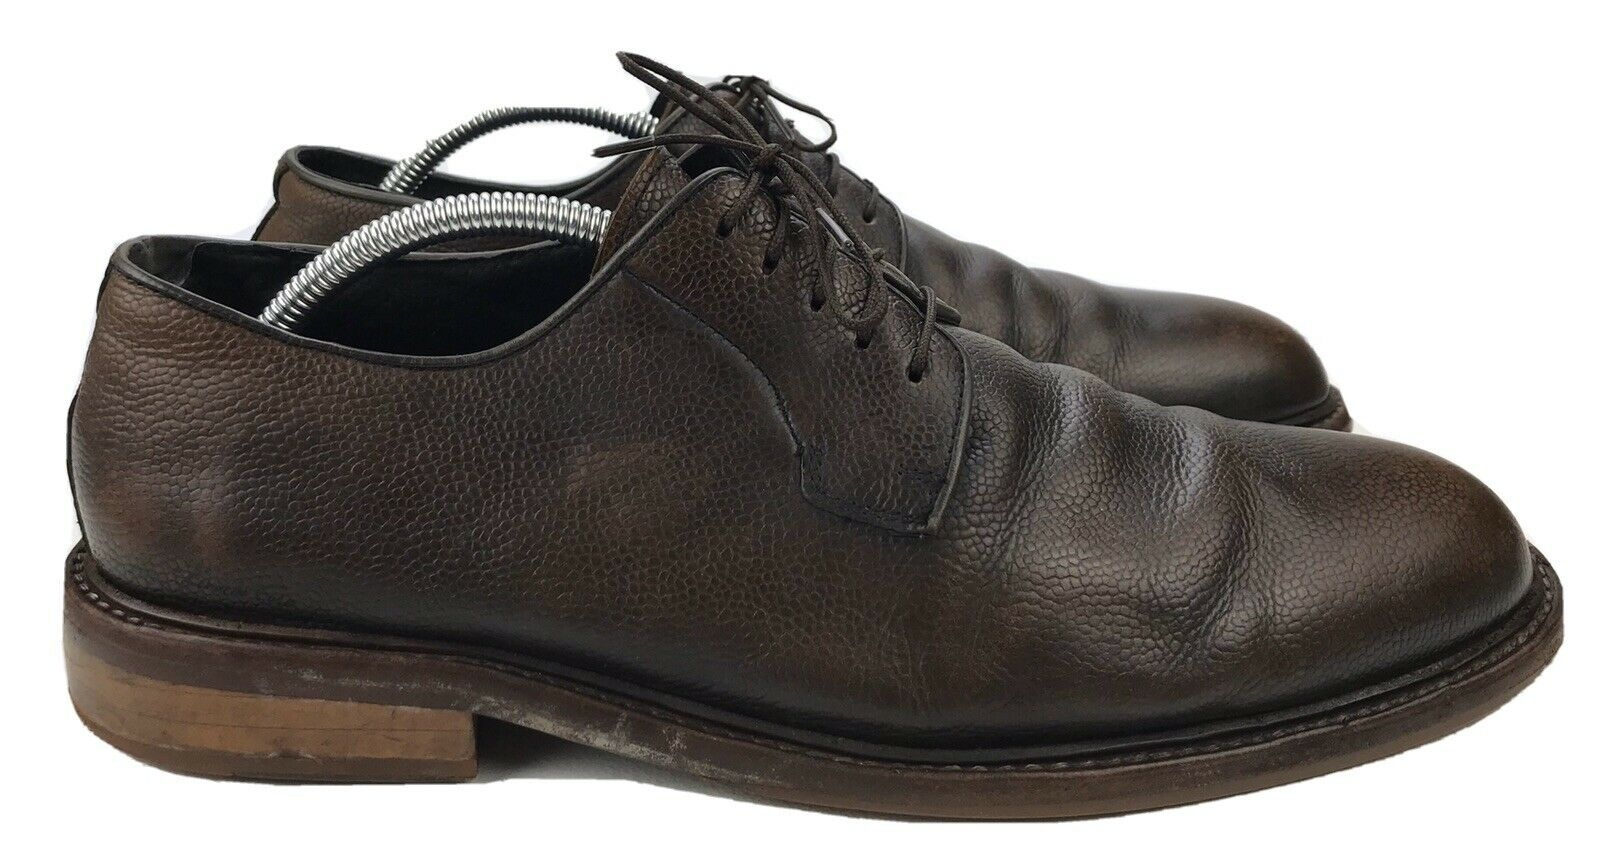 Men's 10 M - Kenneth Cole Class Mate Pebbled Brown Leather Oxford Dress Shoe